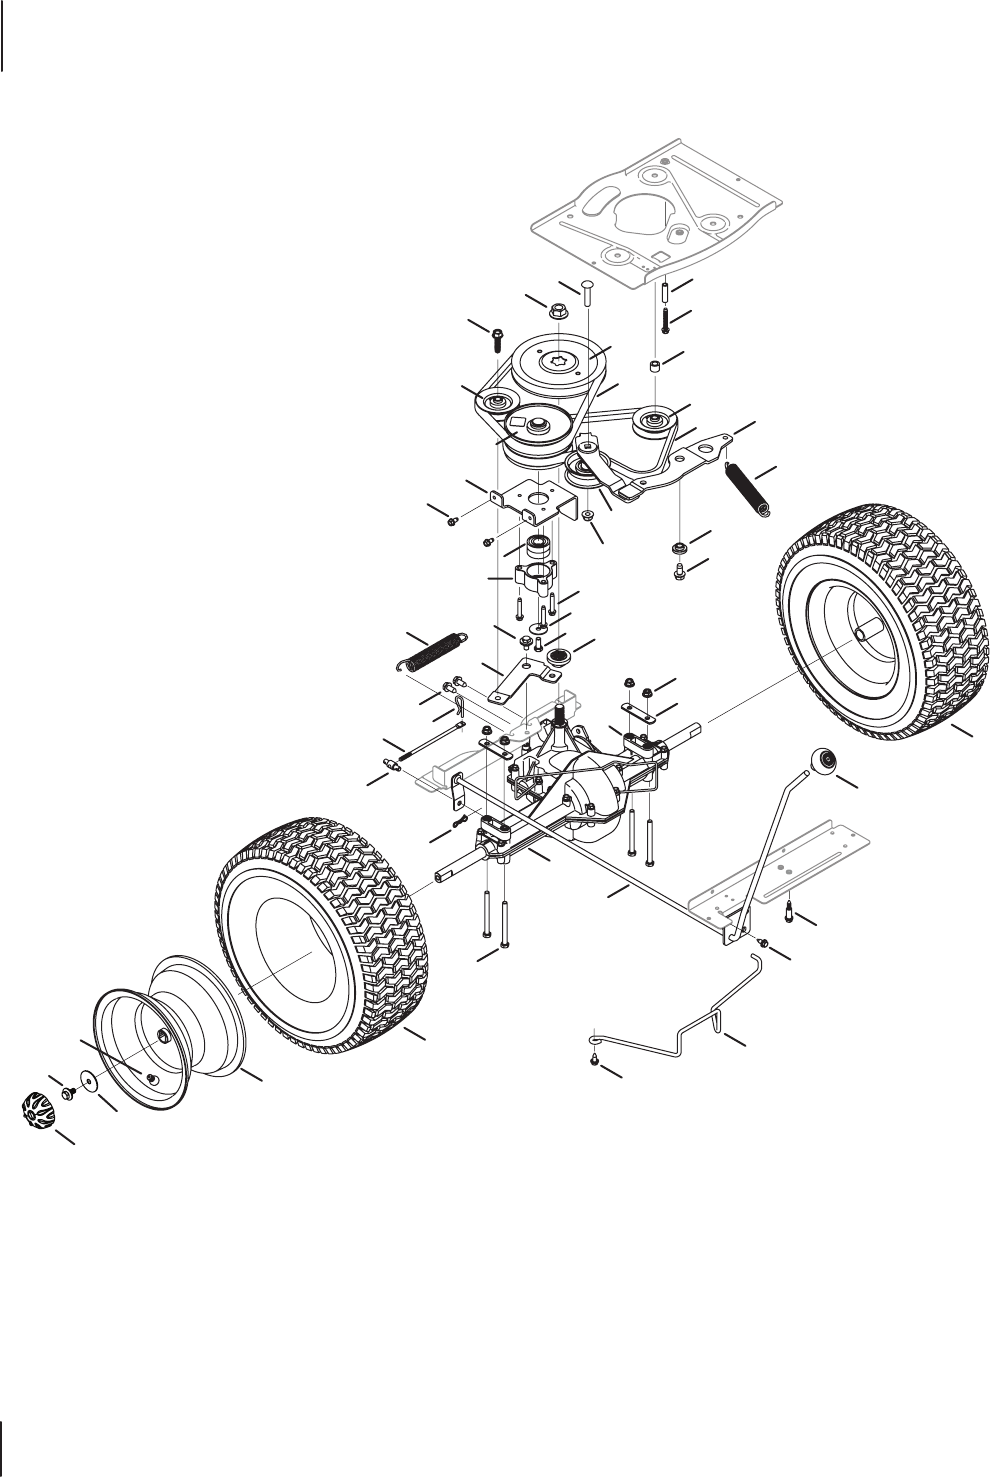 Page 6 of Cub Cadet Lawn Mower CC30 User Guide